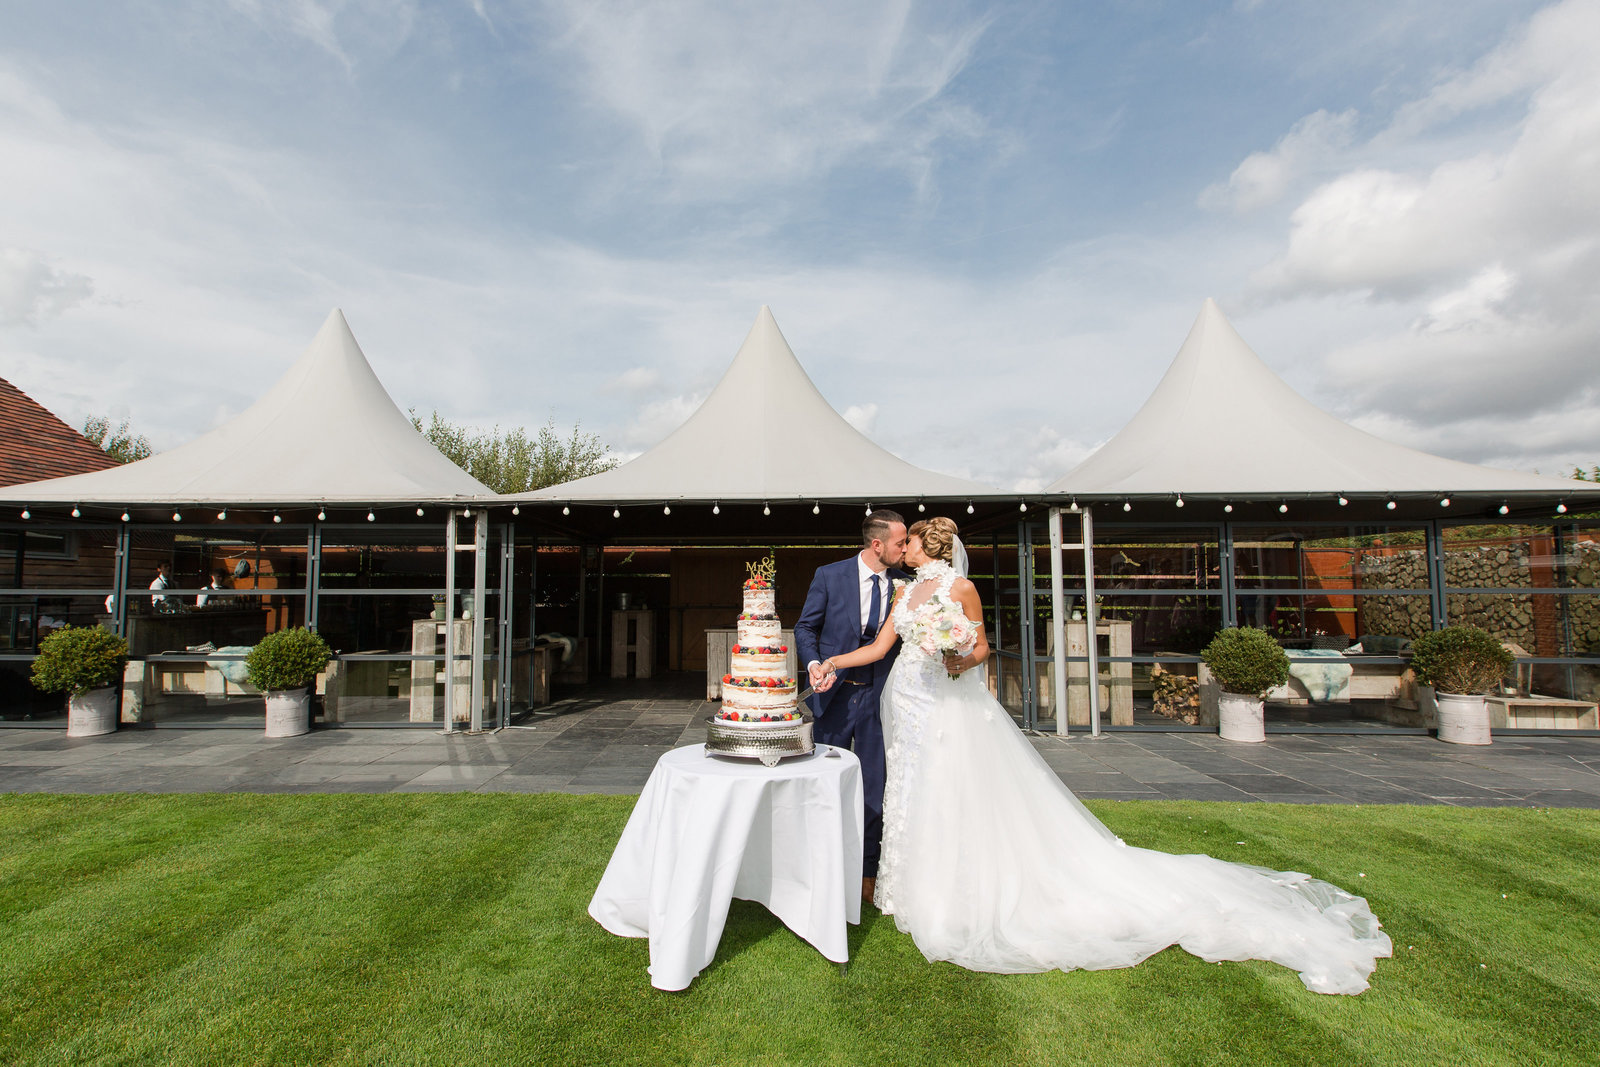 adorlee-0276-southend-barns-wedding-photographer-chichester-west-sussex